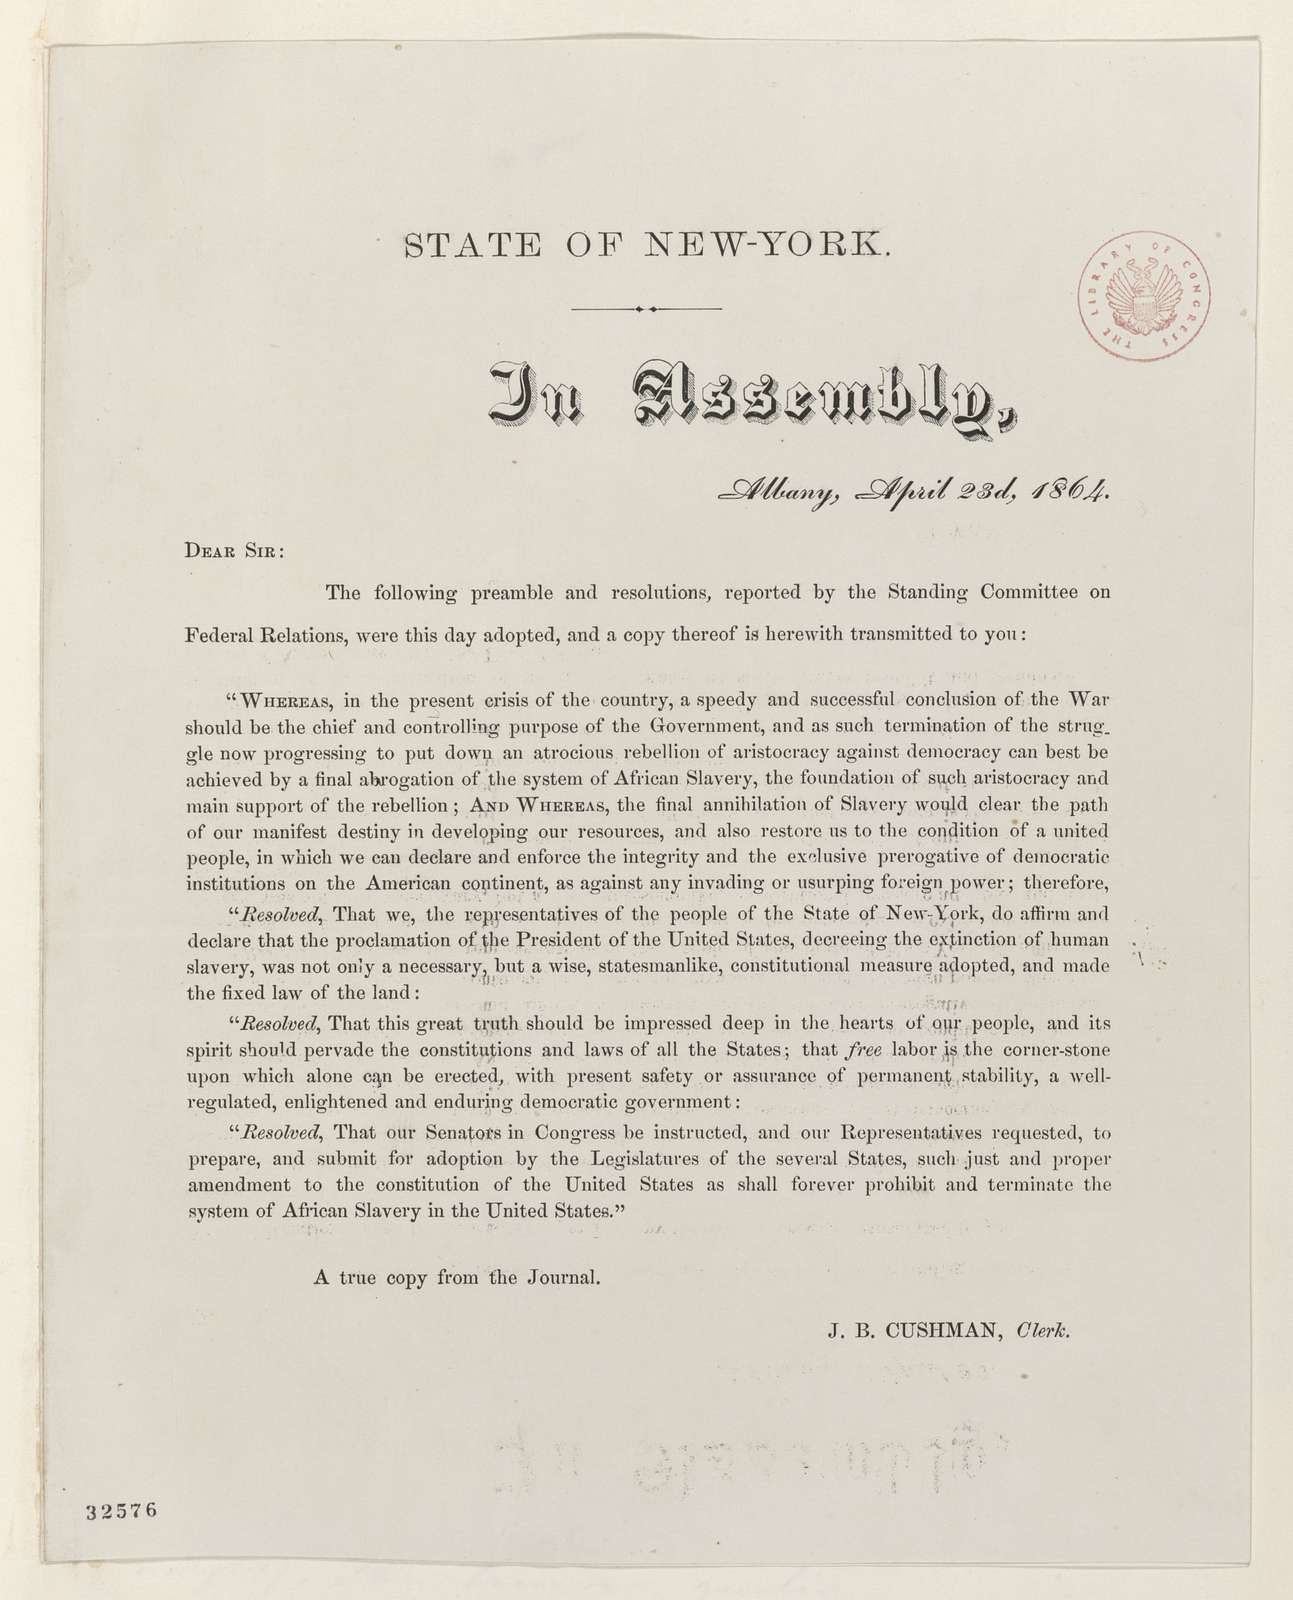 Abraham Lincoln papers: Series 1. General Correspondence. 1833-1916: New York Legislature to Abraham Lincoln, Saturday, April 23, 1864 (Printed resolution)